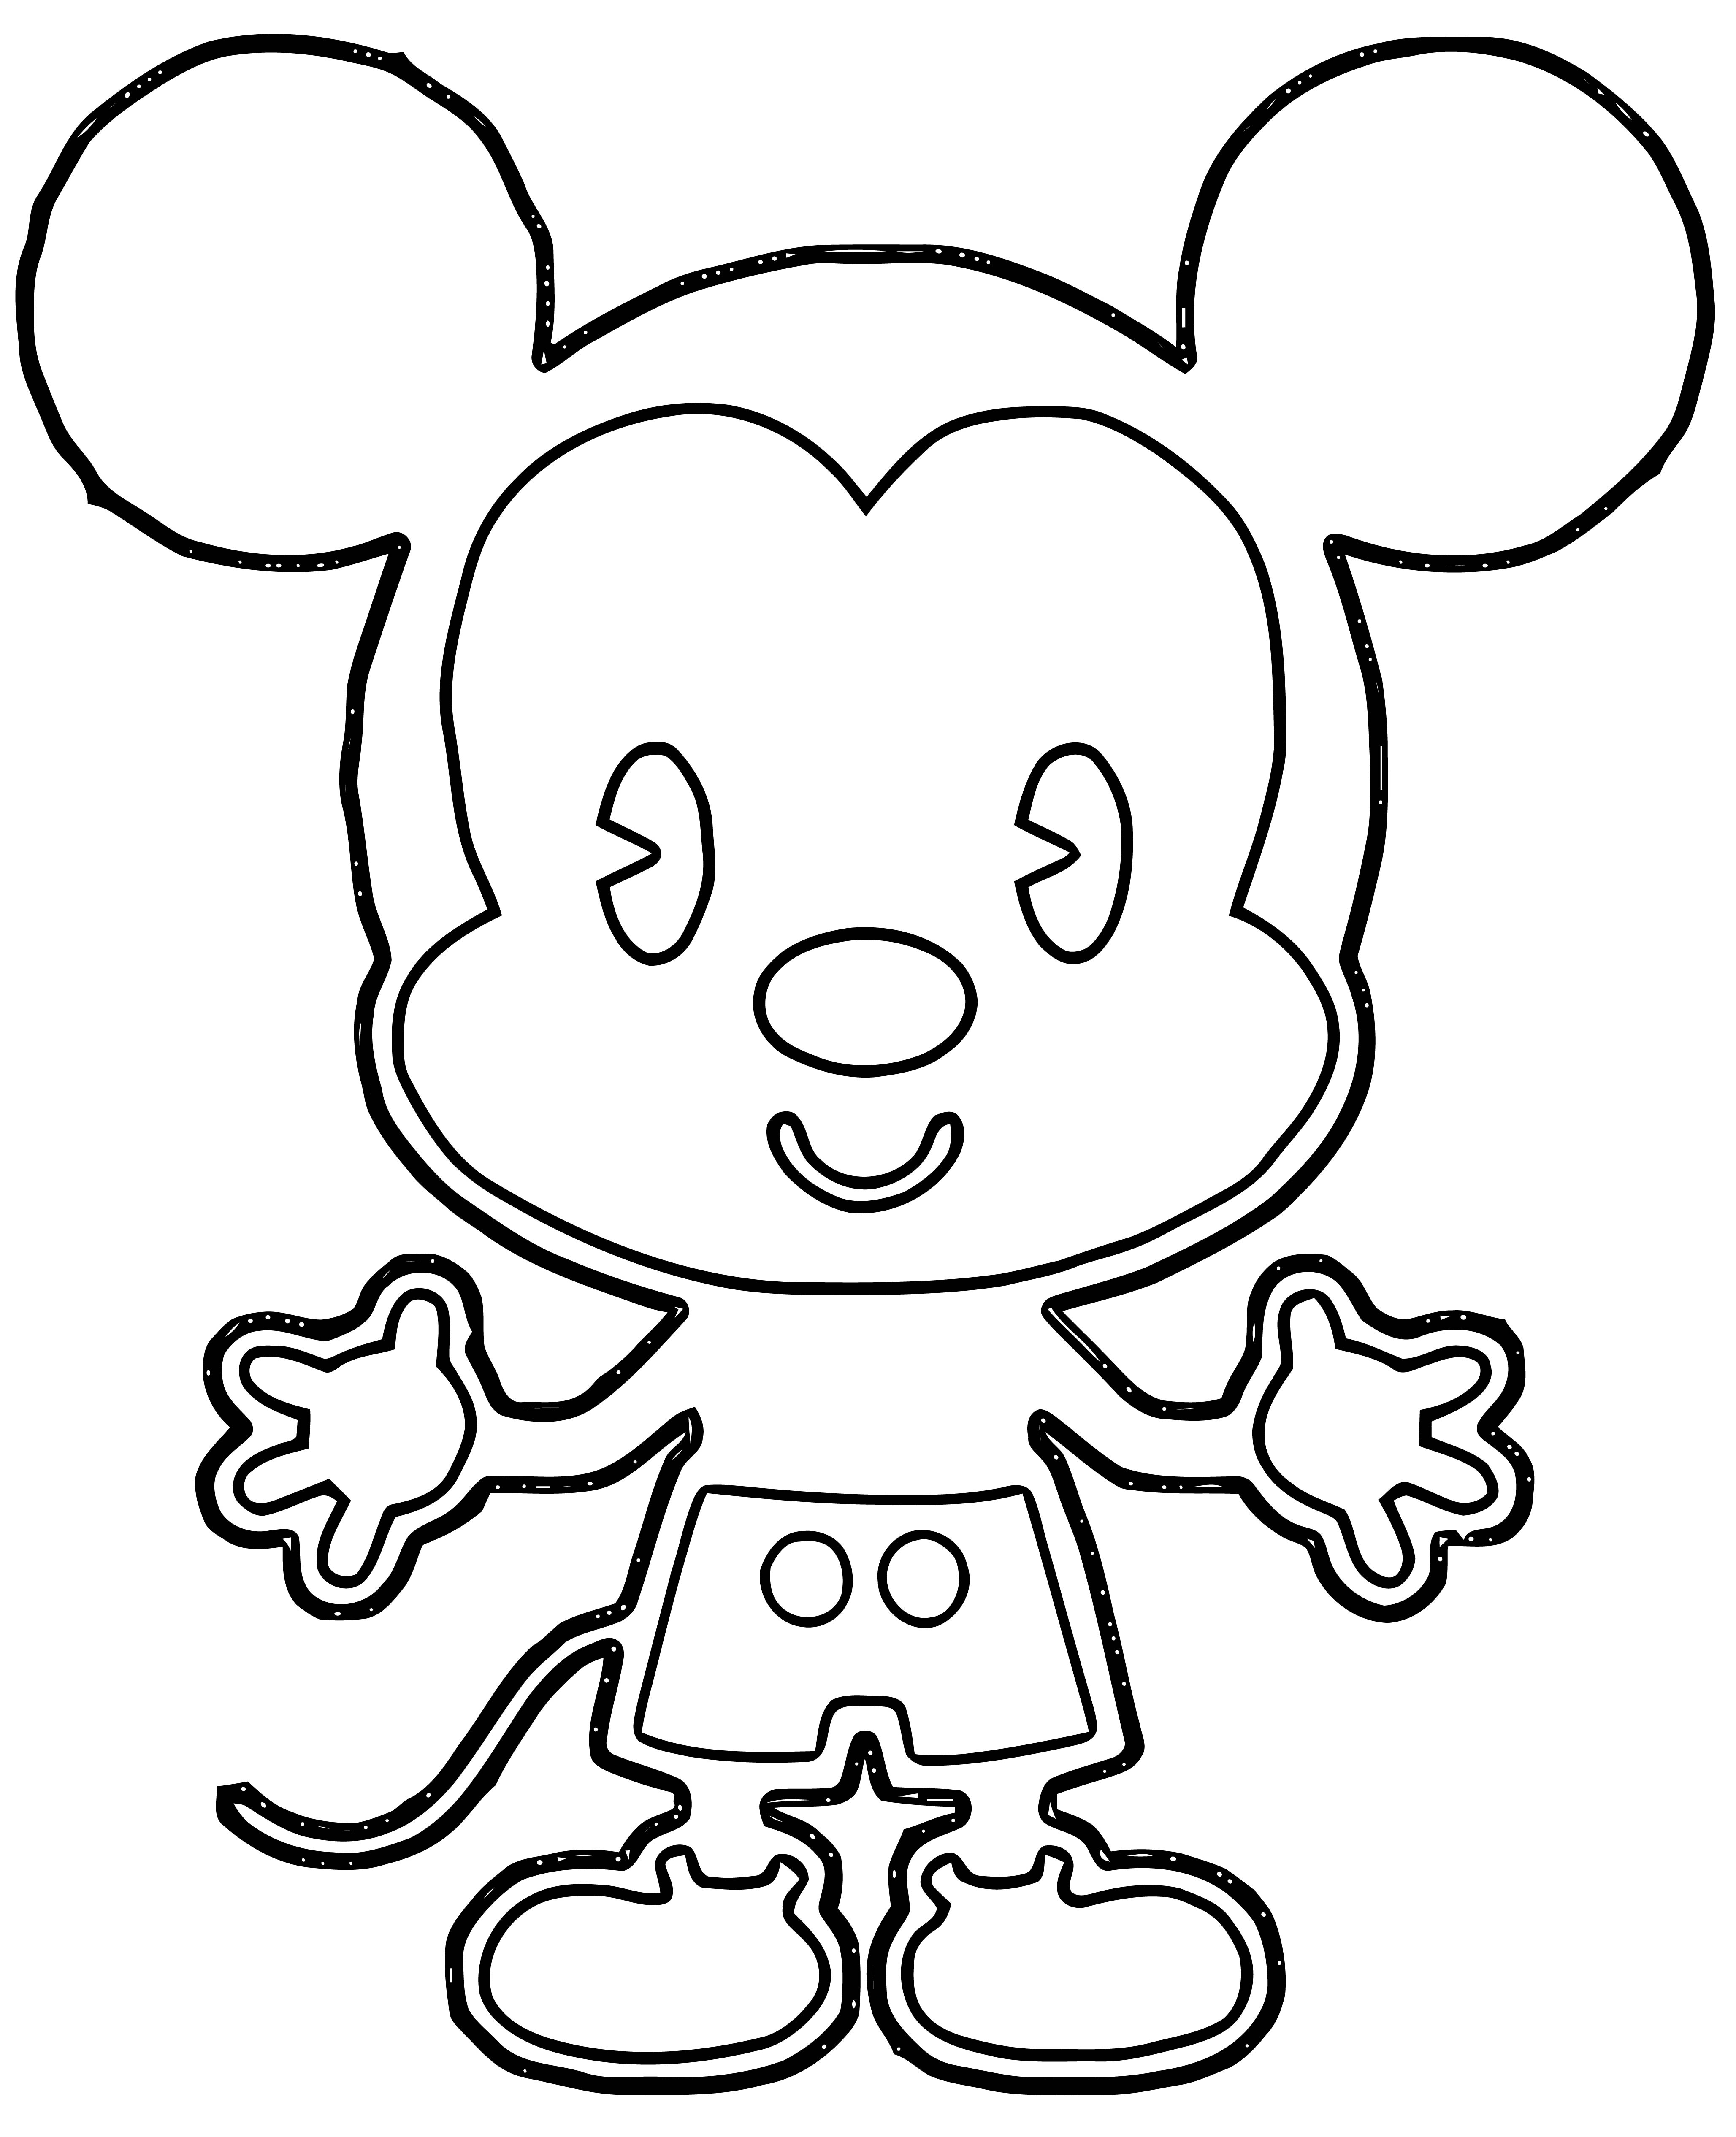 Cute Mickey Mouse Outline Coloring Page